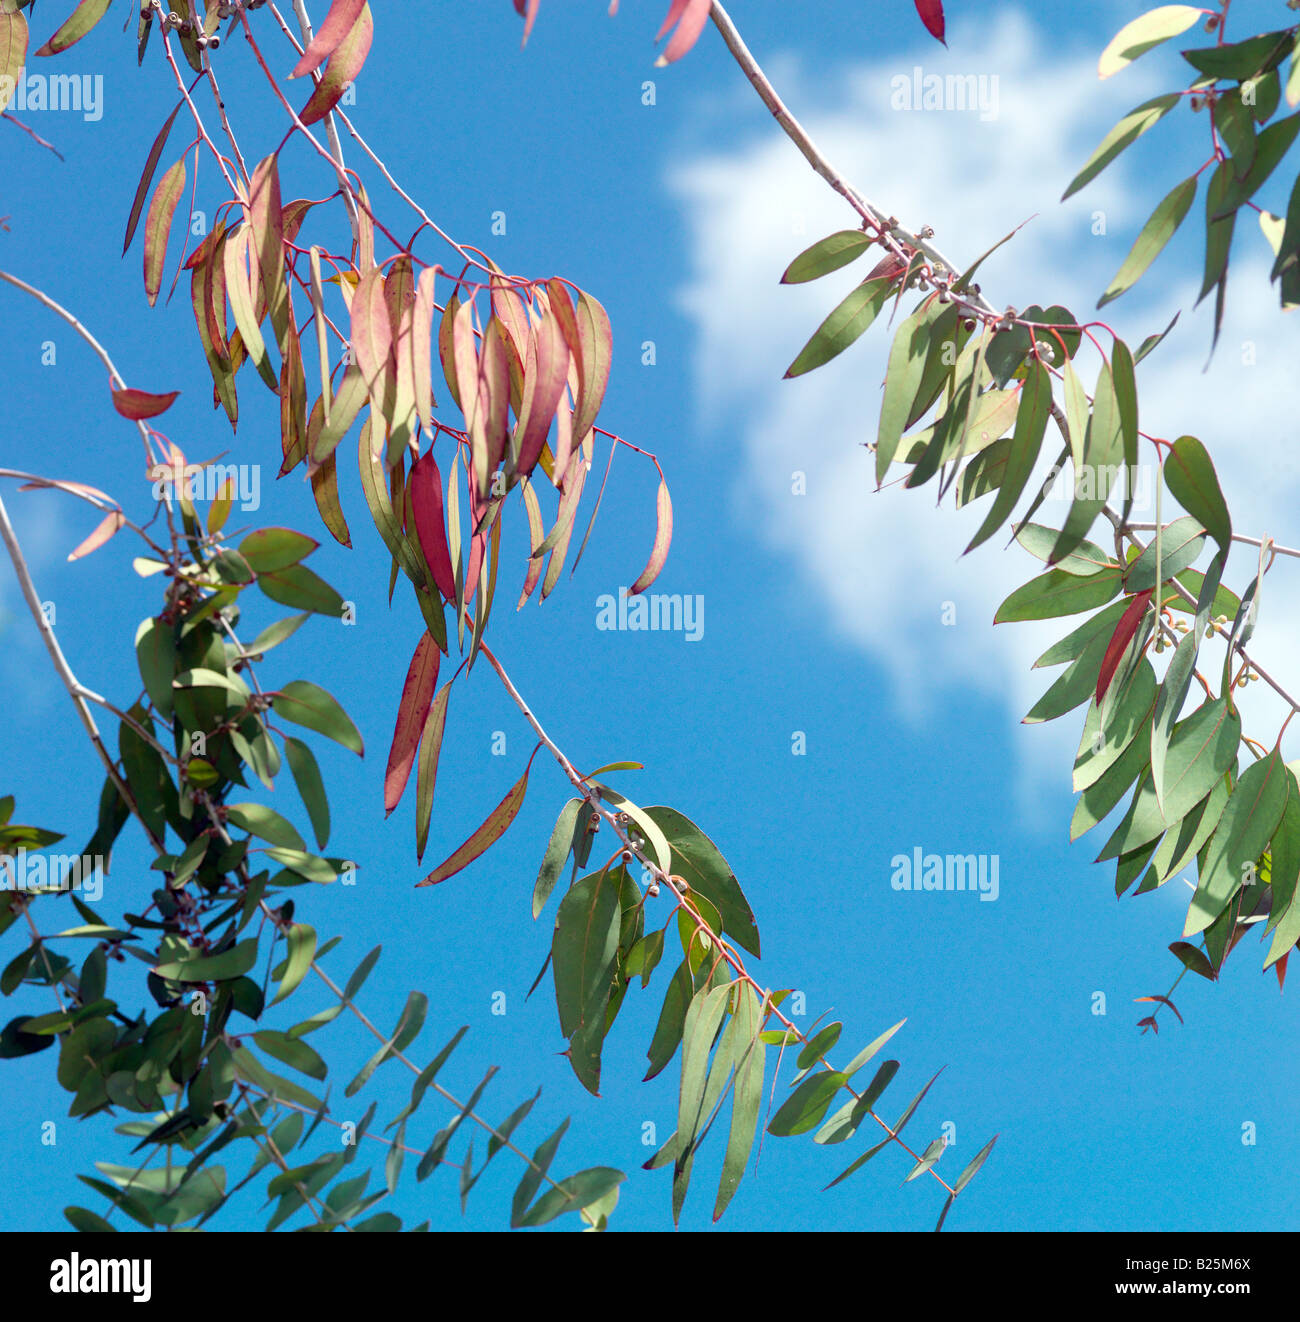 Eucalyptus Leaves and Blue Sky - Stock Image